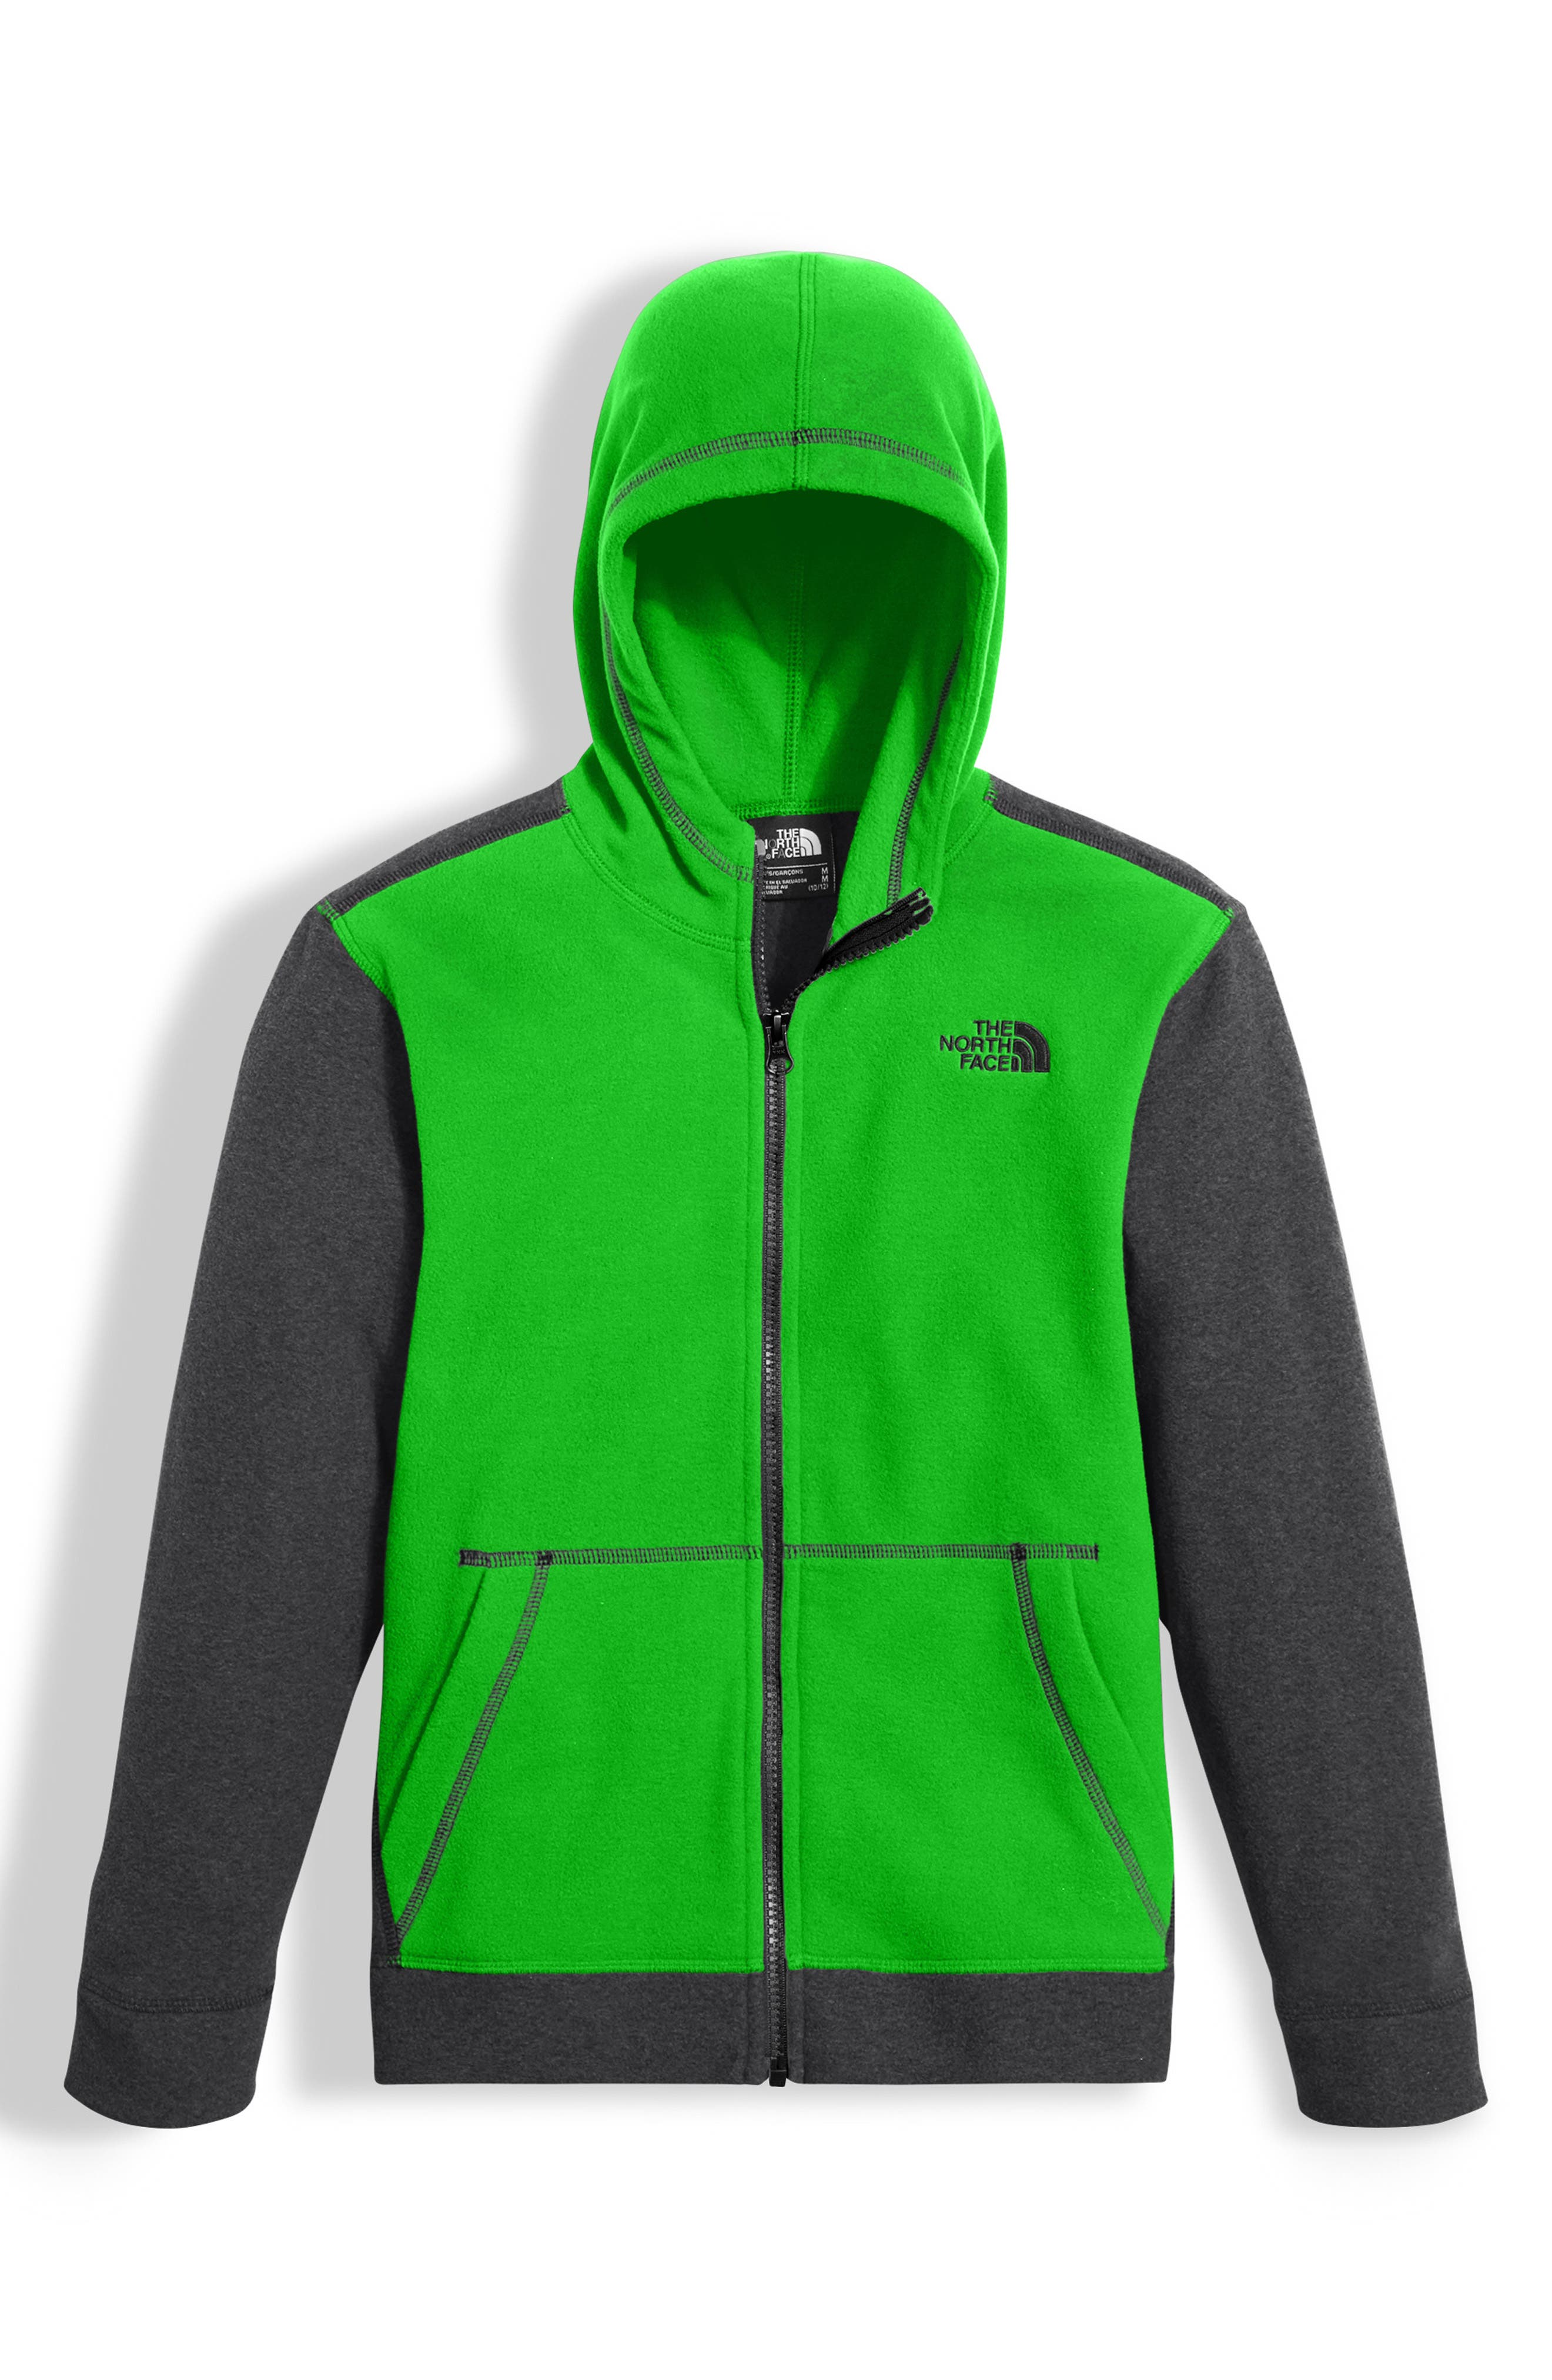 Boys The North Face Glacier Full Zip Hoodie Size L (1416)  Green